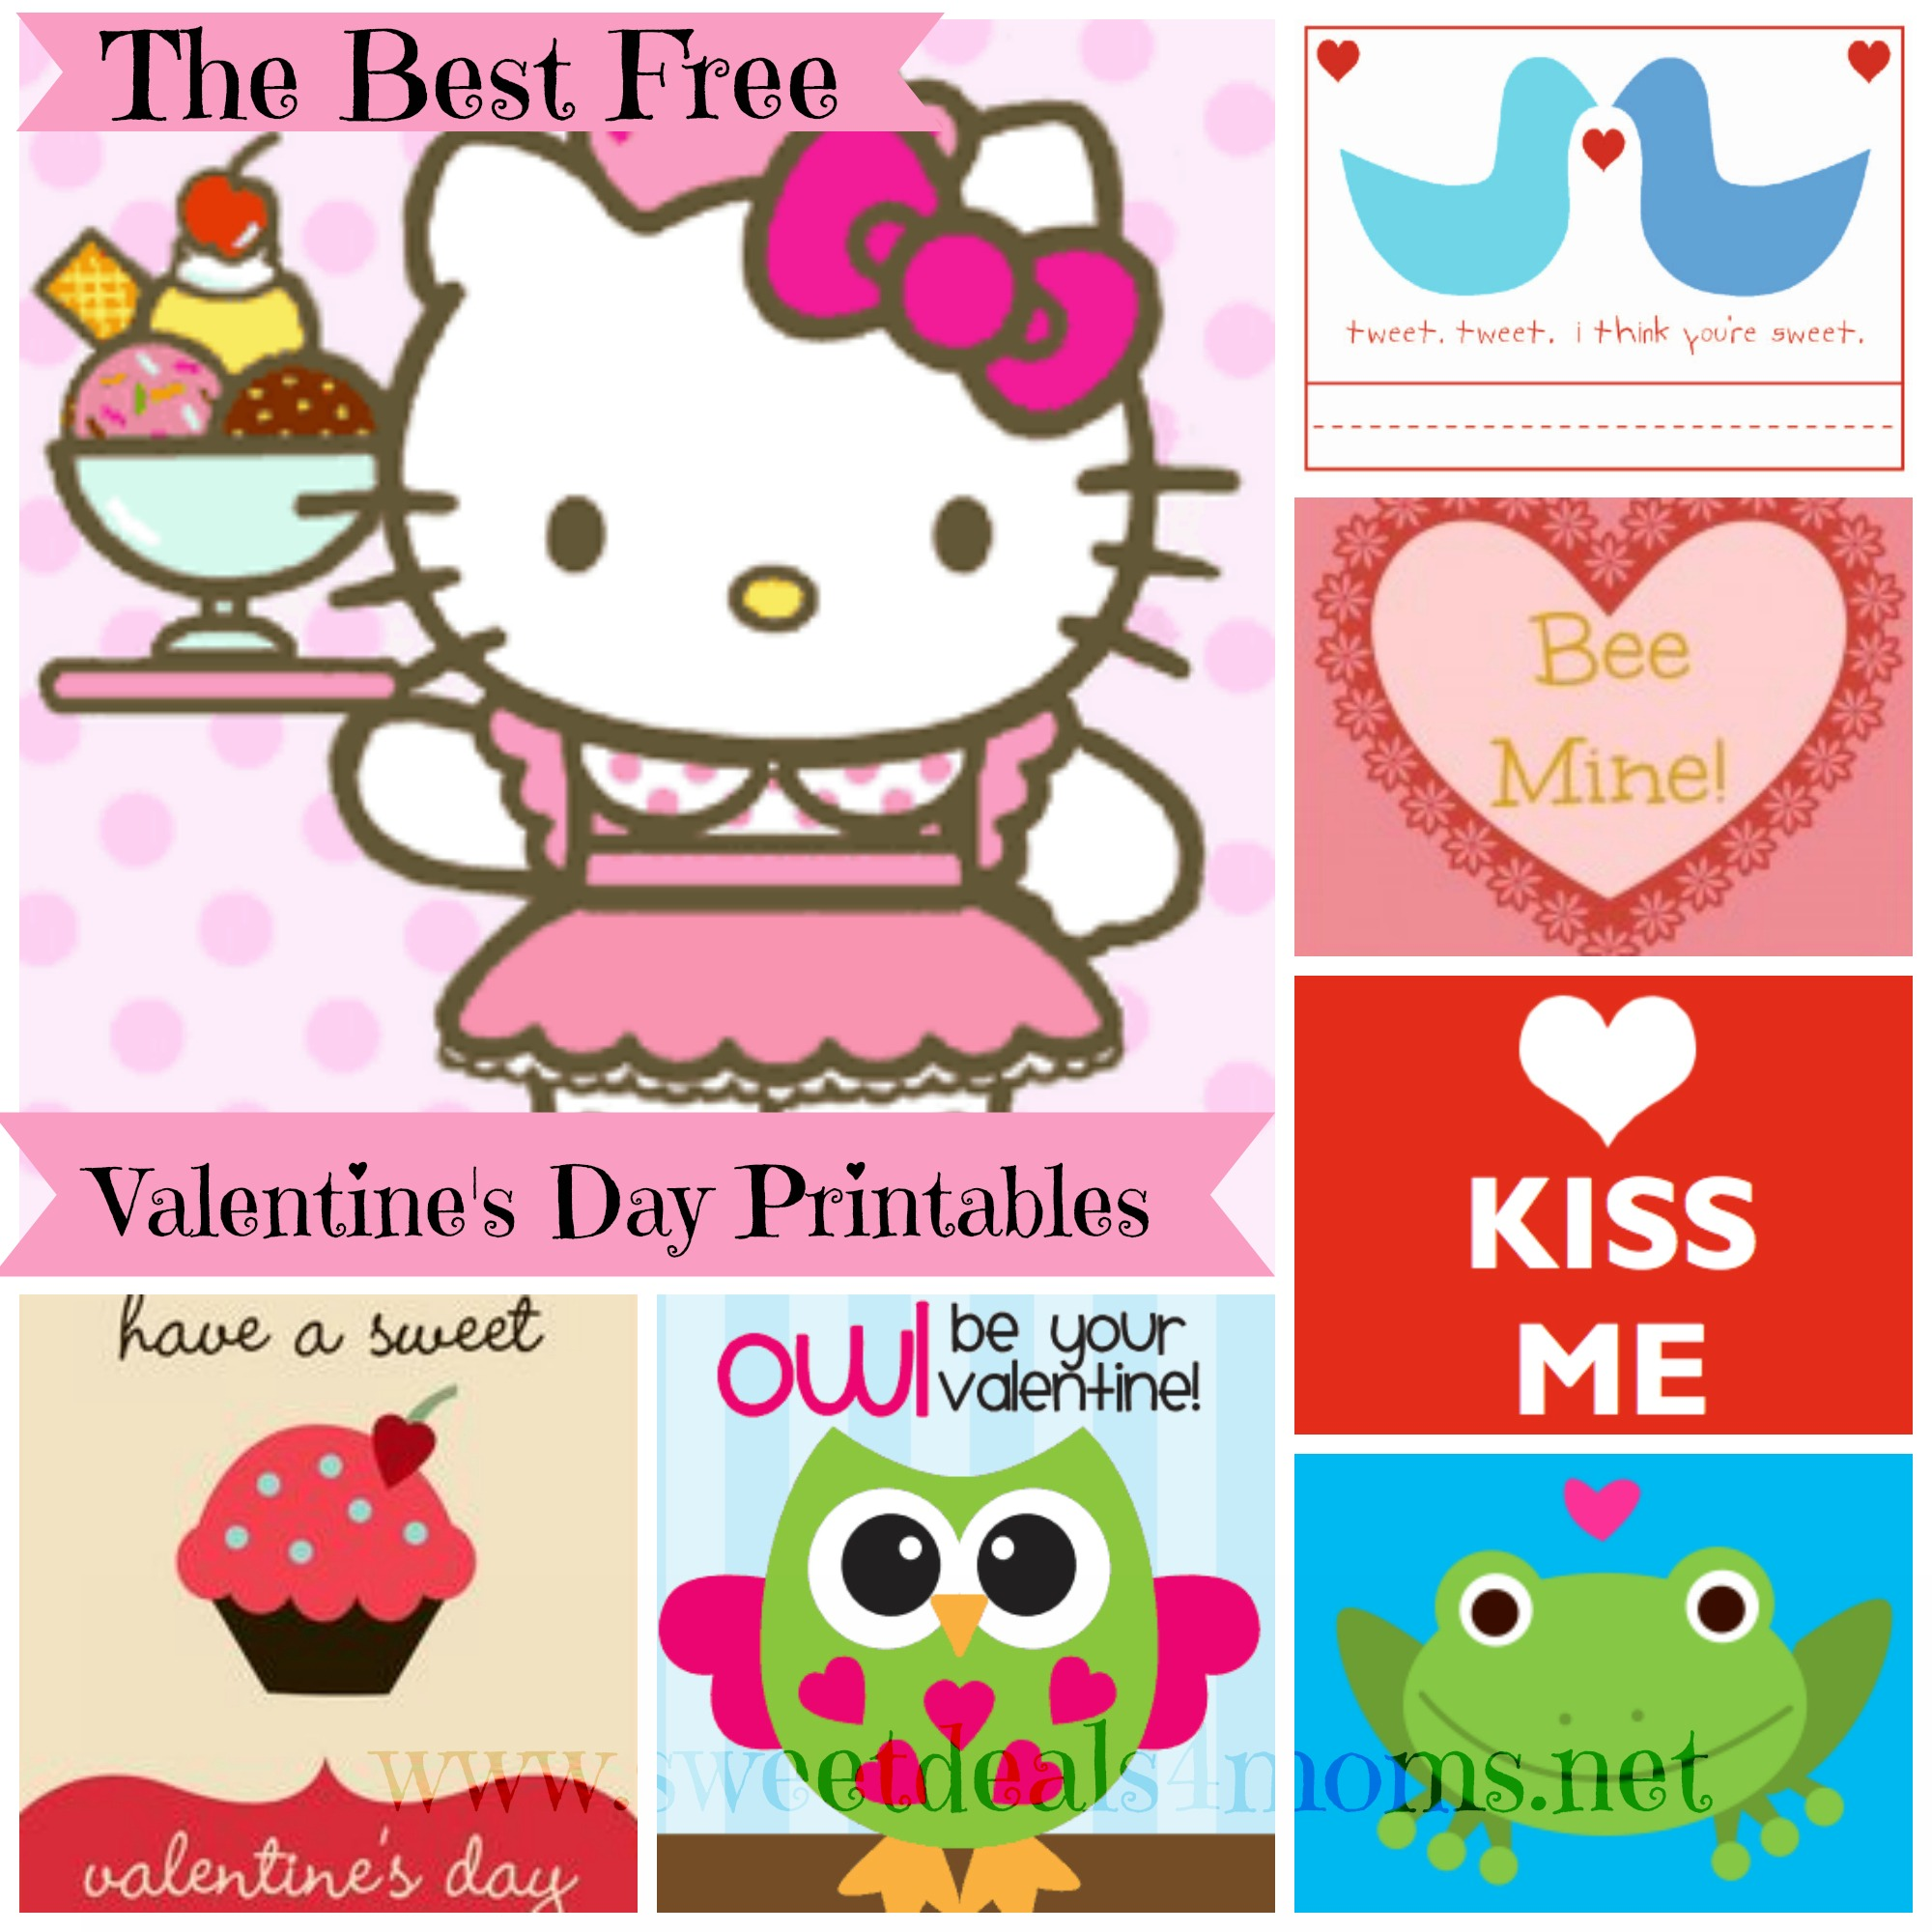 free printable valentines day card roundup sweet deals 4 moms